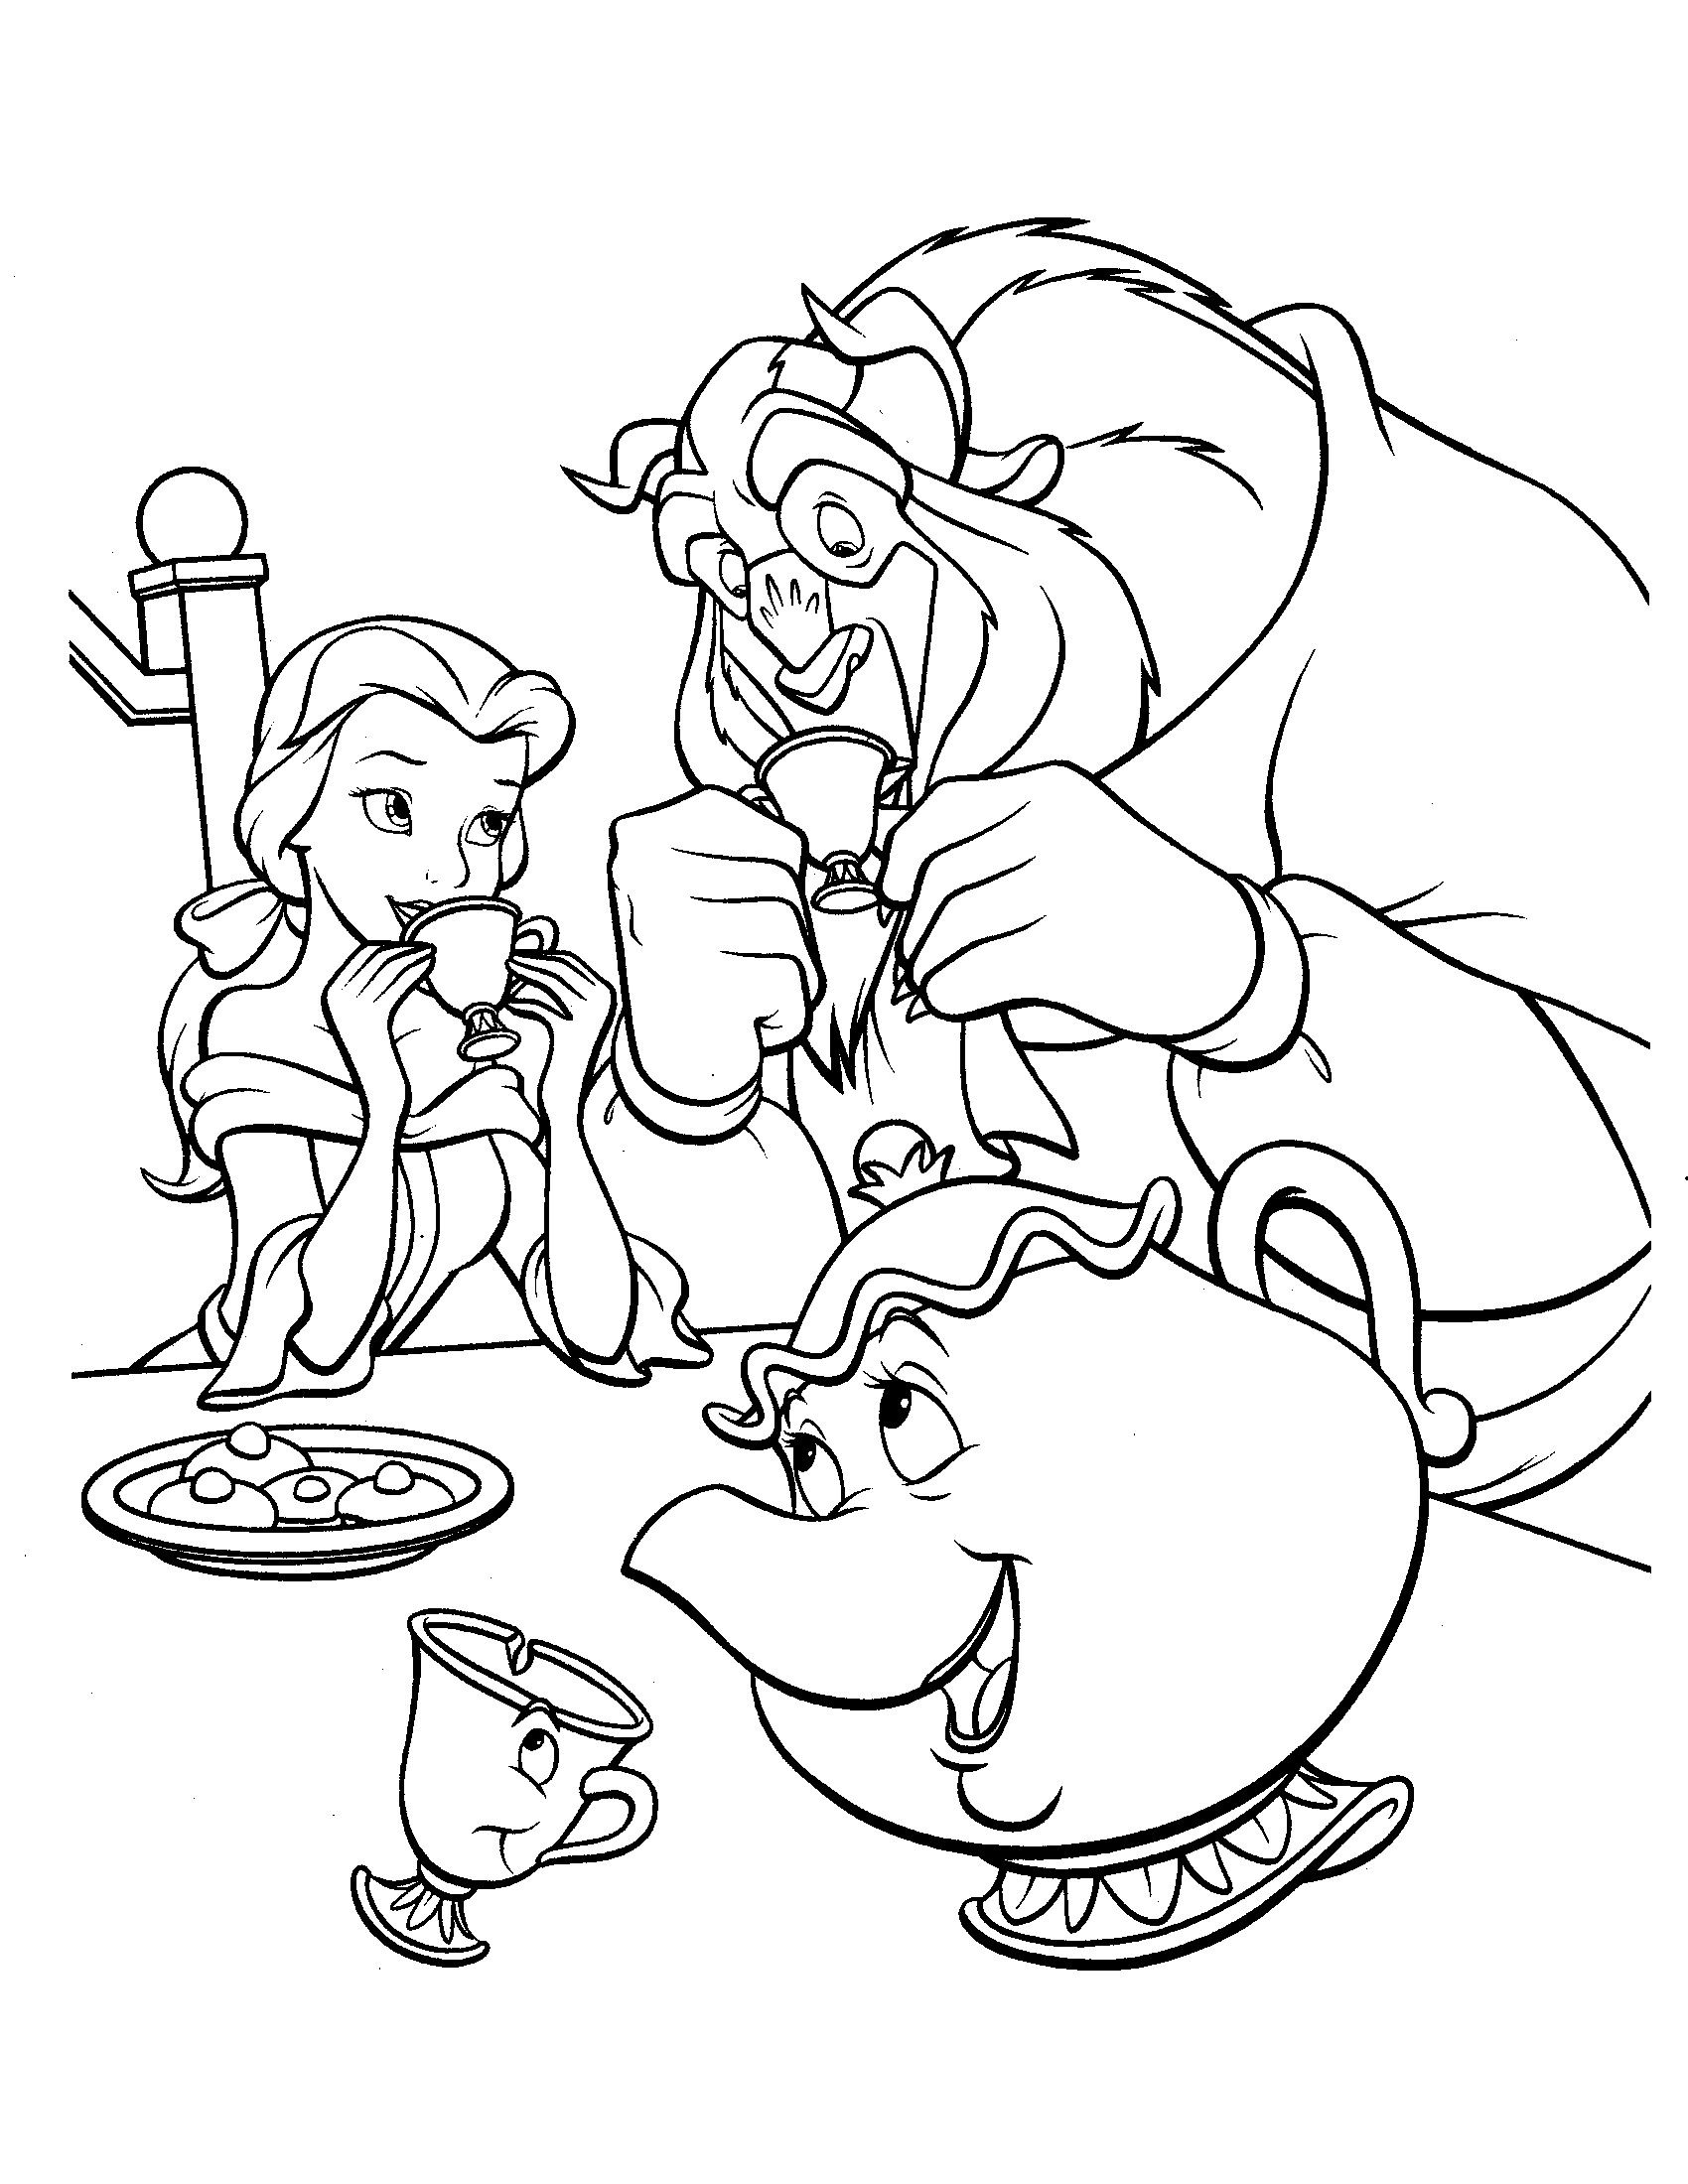 75 [ Free Beauty And The Beast Coloring Pages ] Free ...Beauty And The Beast Coloring Page Beast